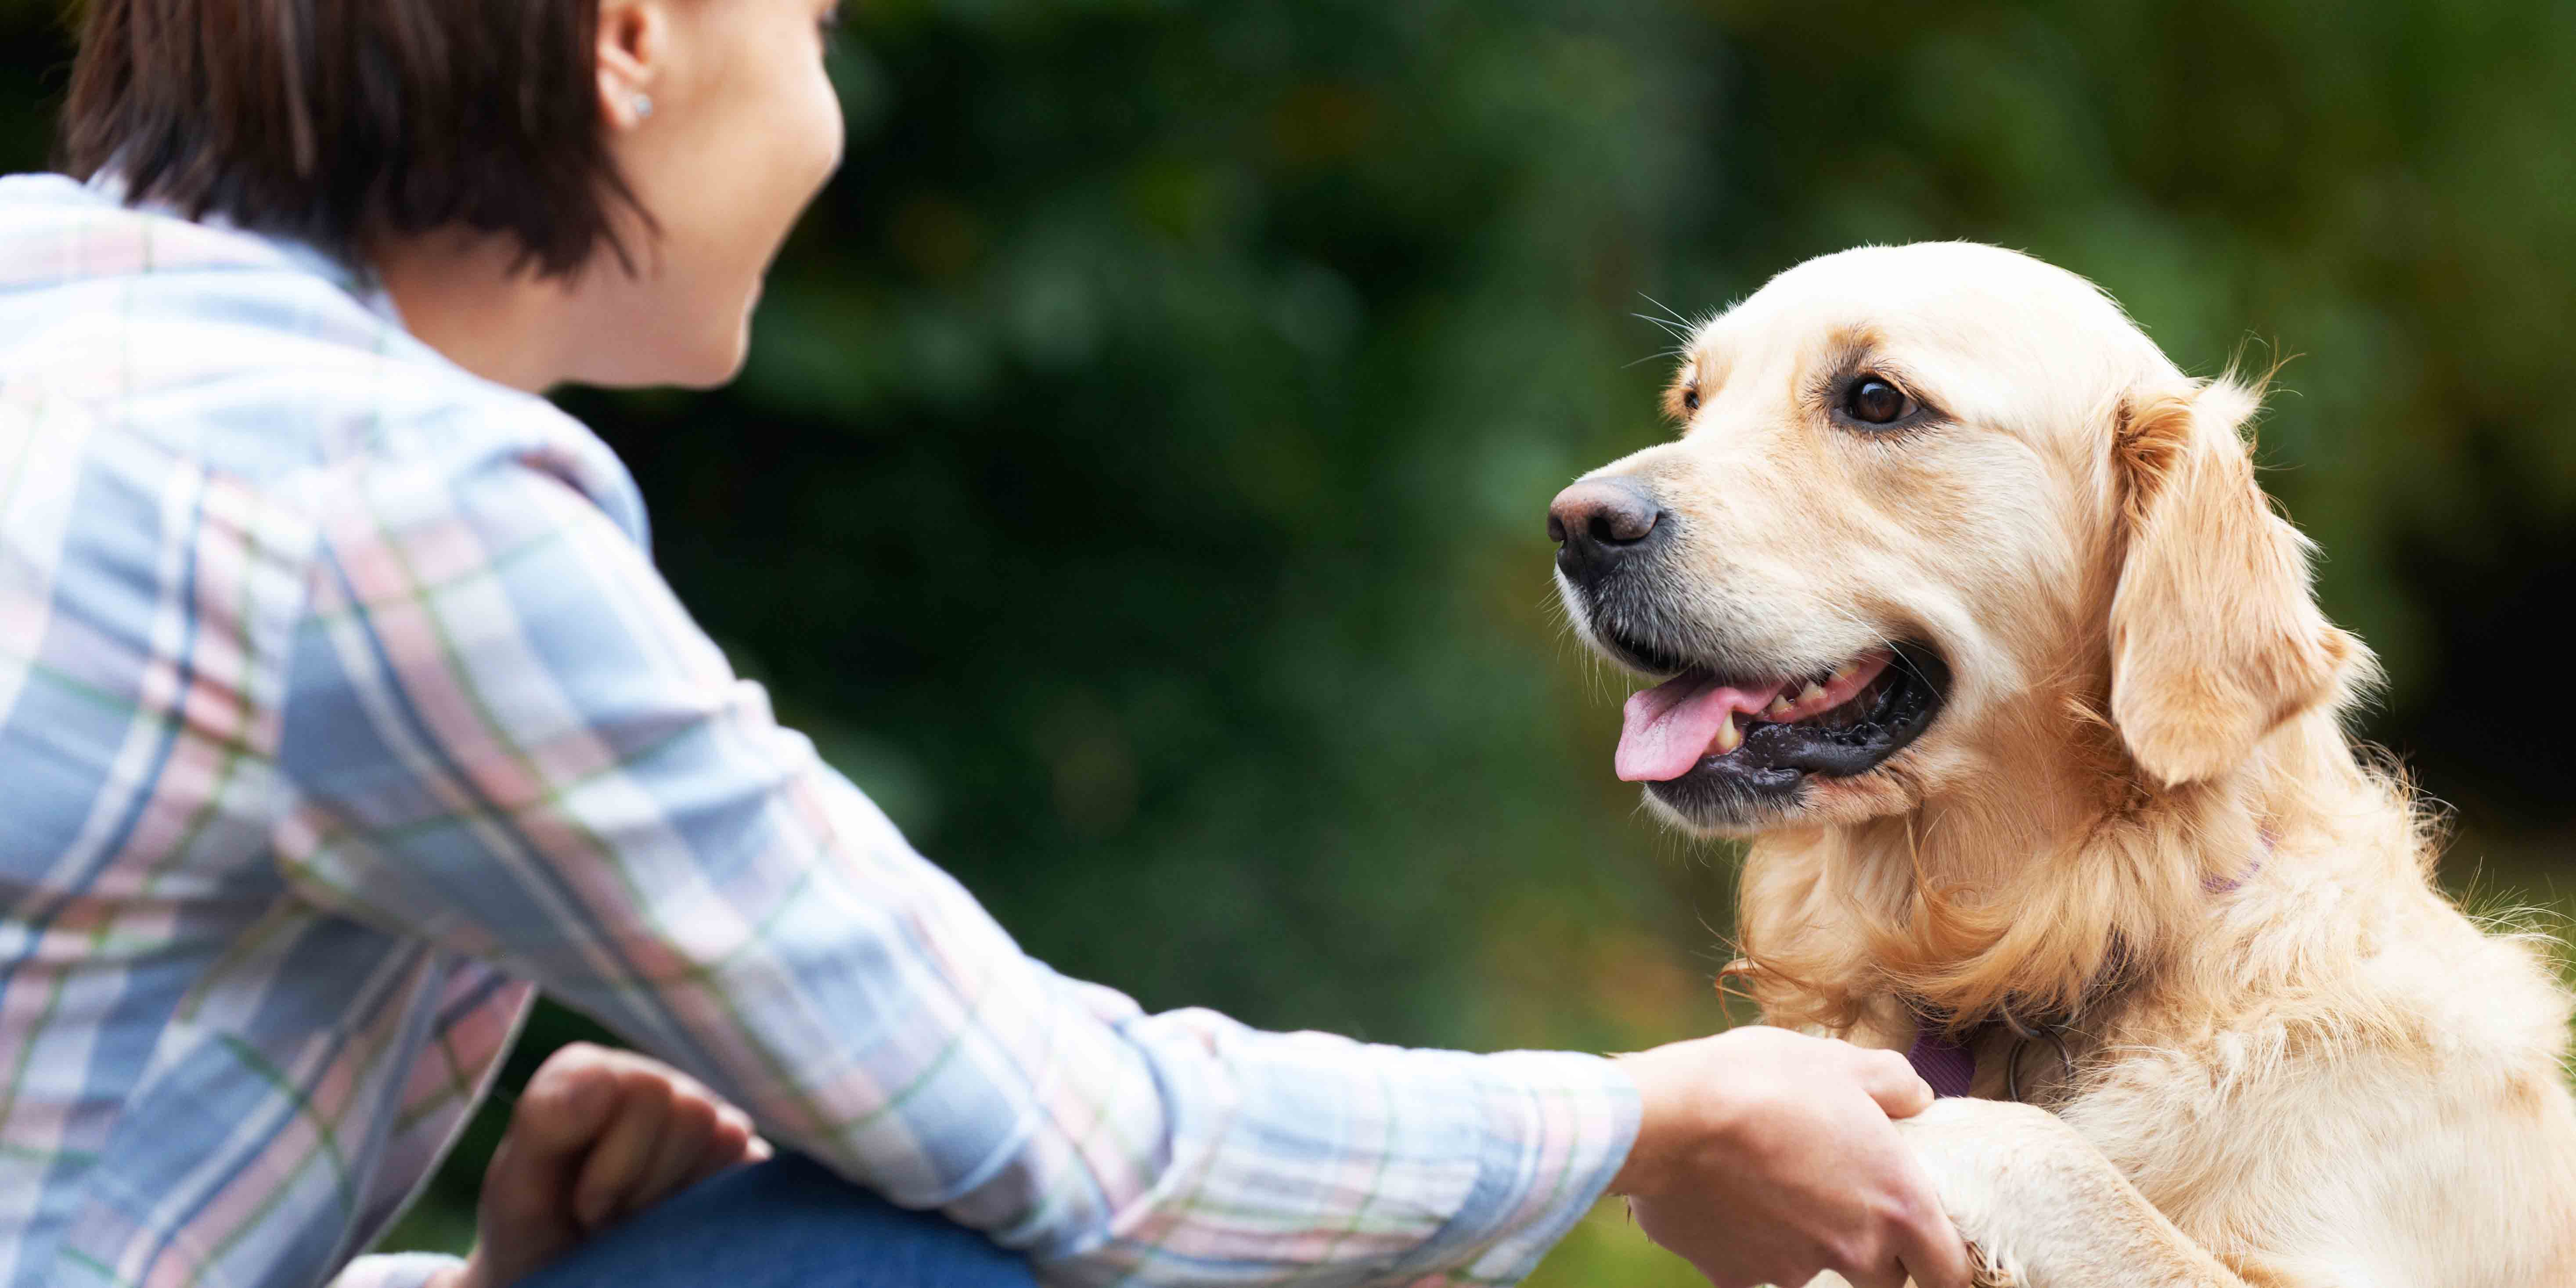 pet sitting by West Childcare Connection, Vancouver